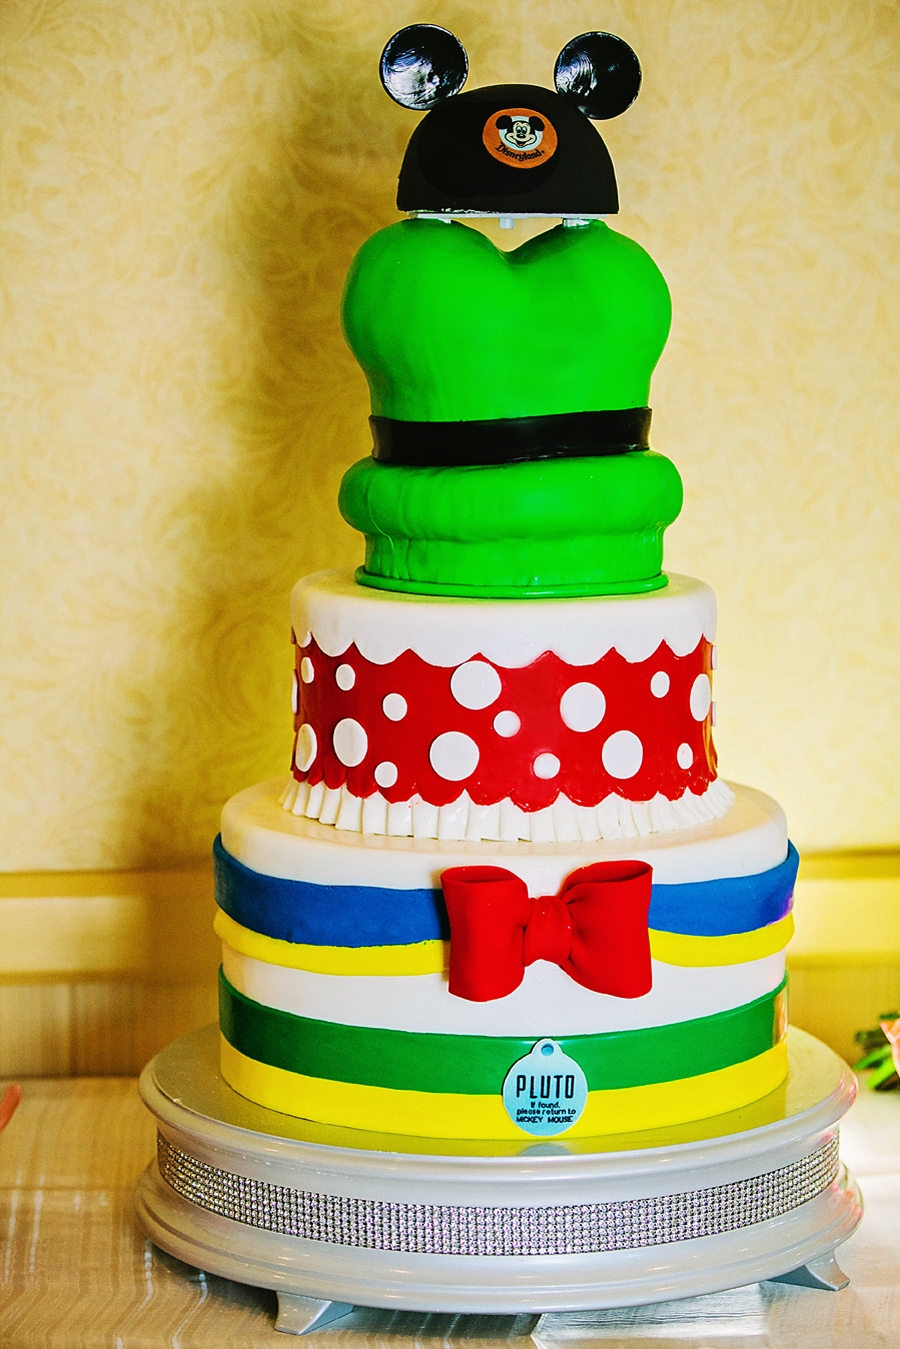 Weddings at disney parks and resorts - Sweet Its National Cake Day At Walt Disney World Resort Disney Walt Disney Birthday Cakes